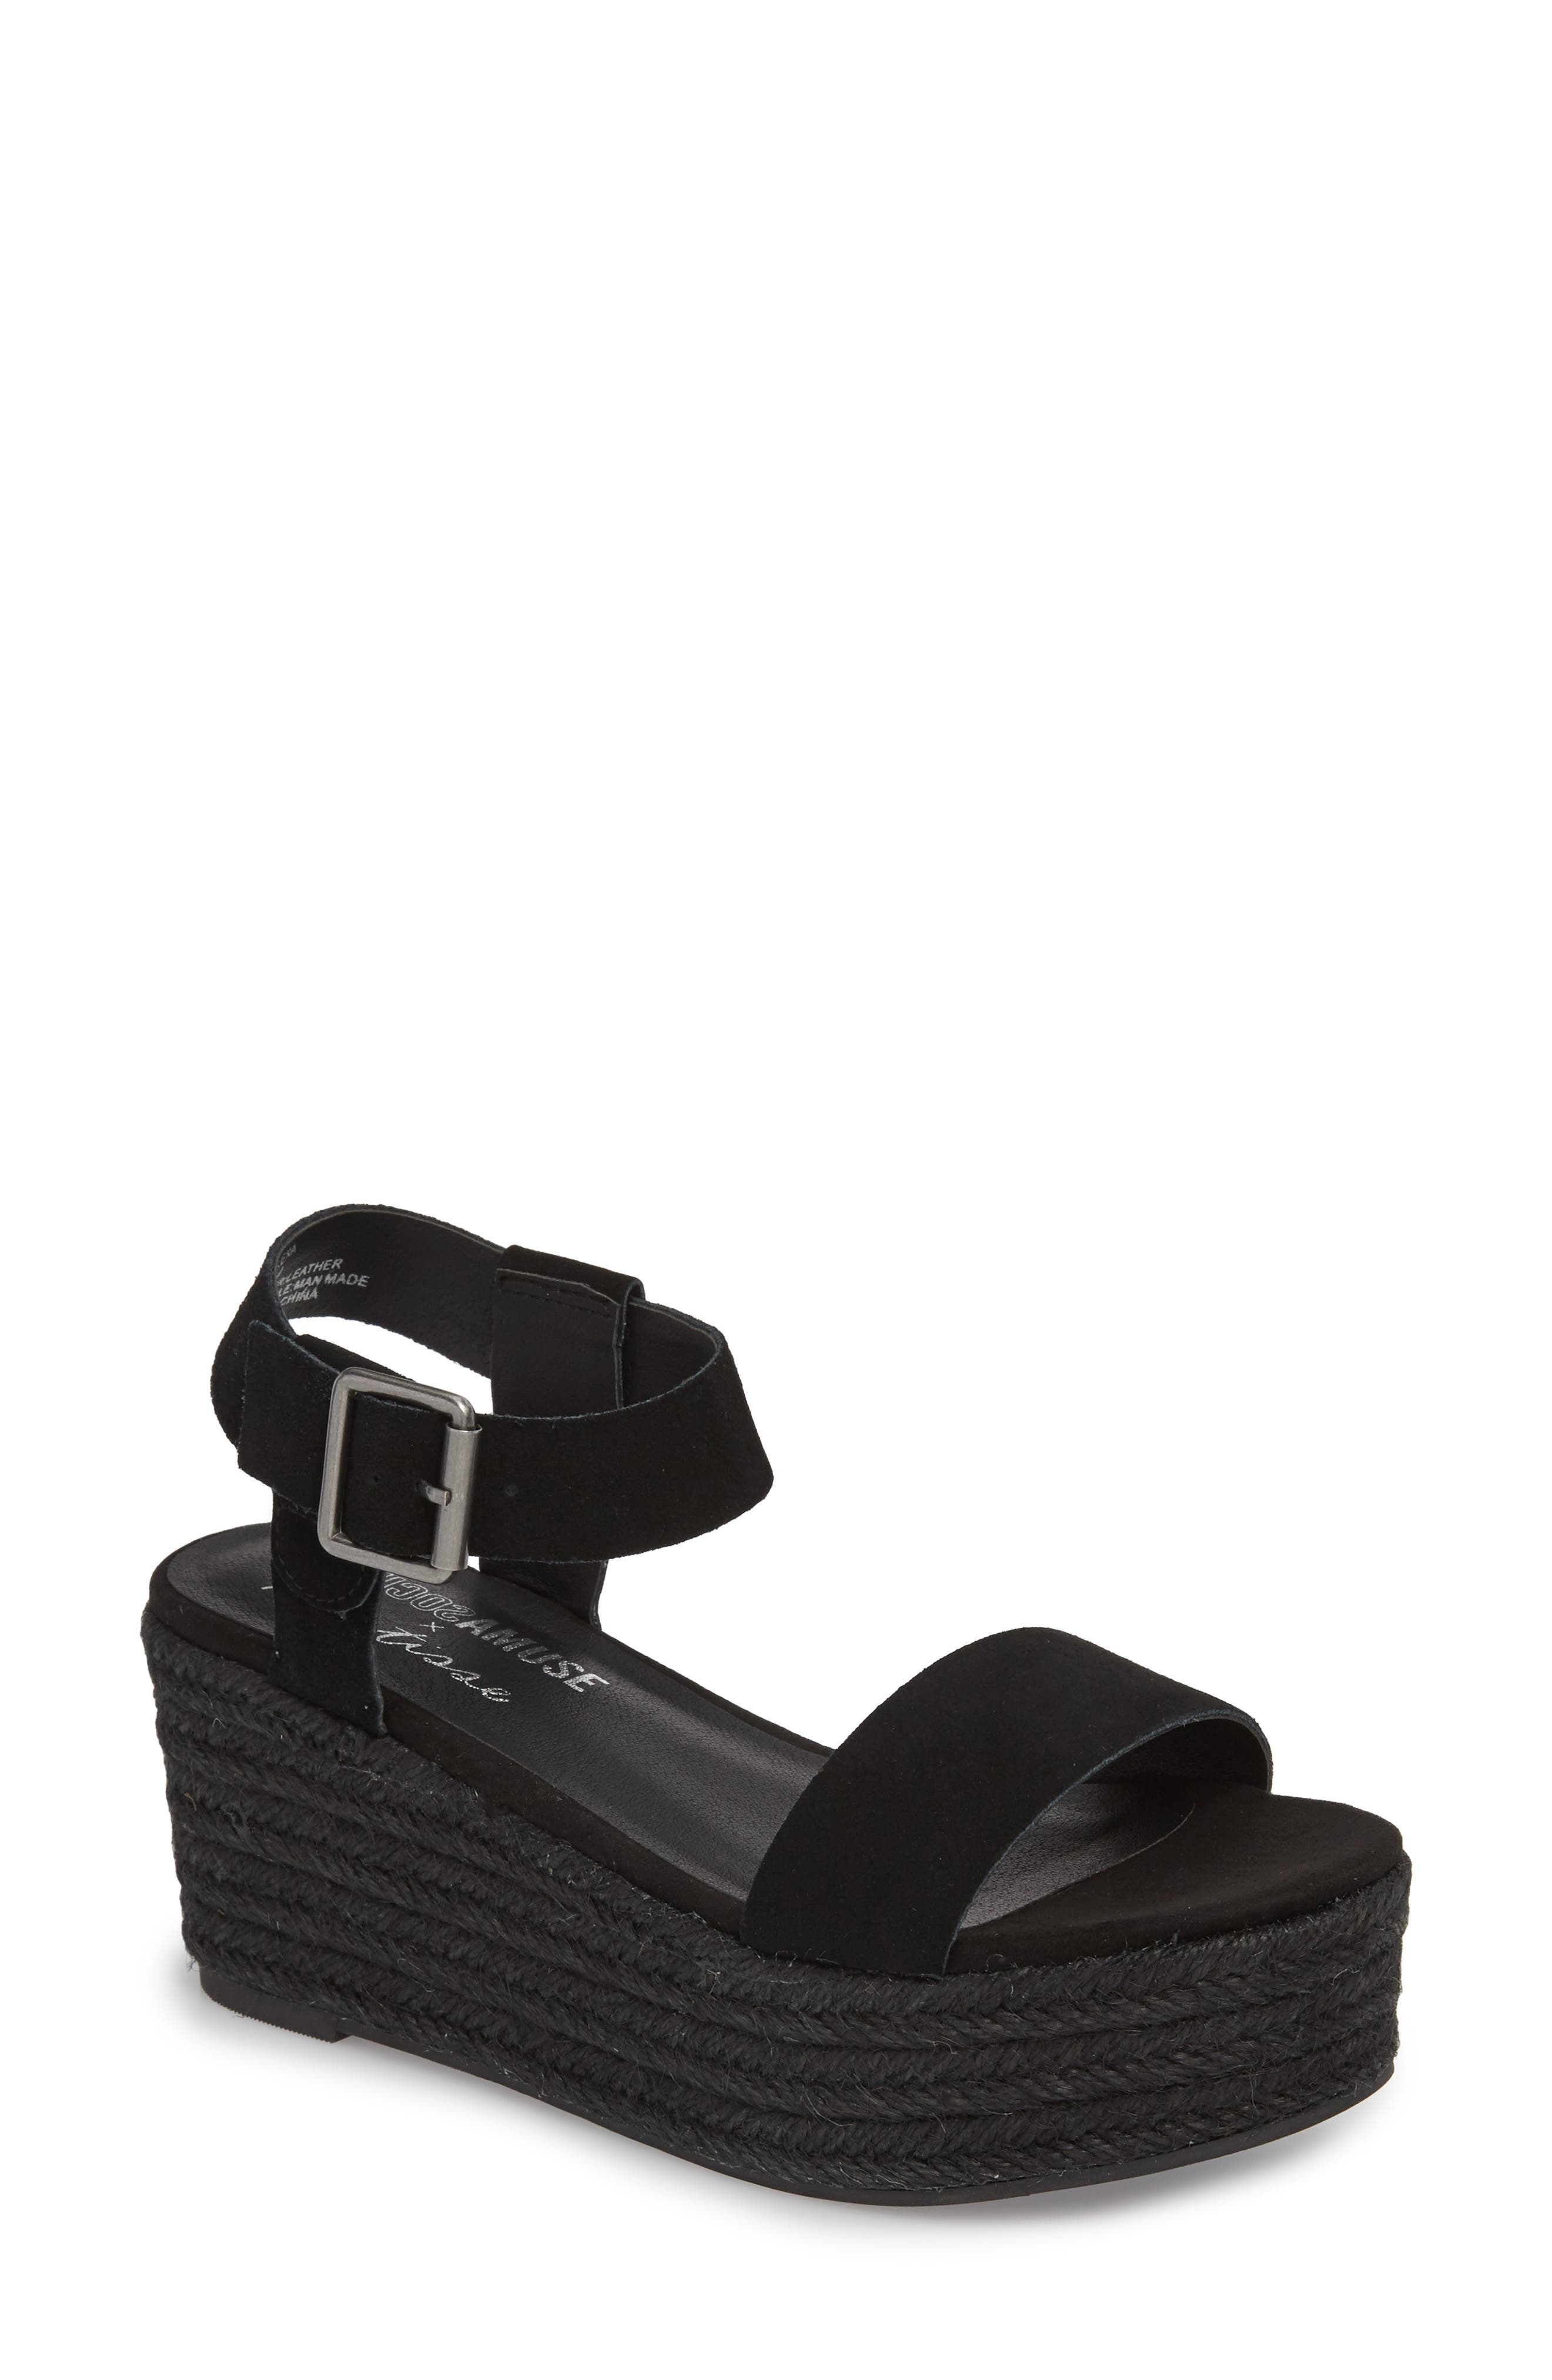 Amuse Society x Matisse Siena Wedge Sandal,                         Main,                         color, 017